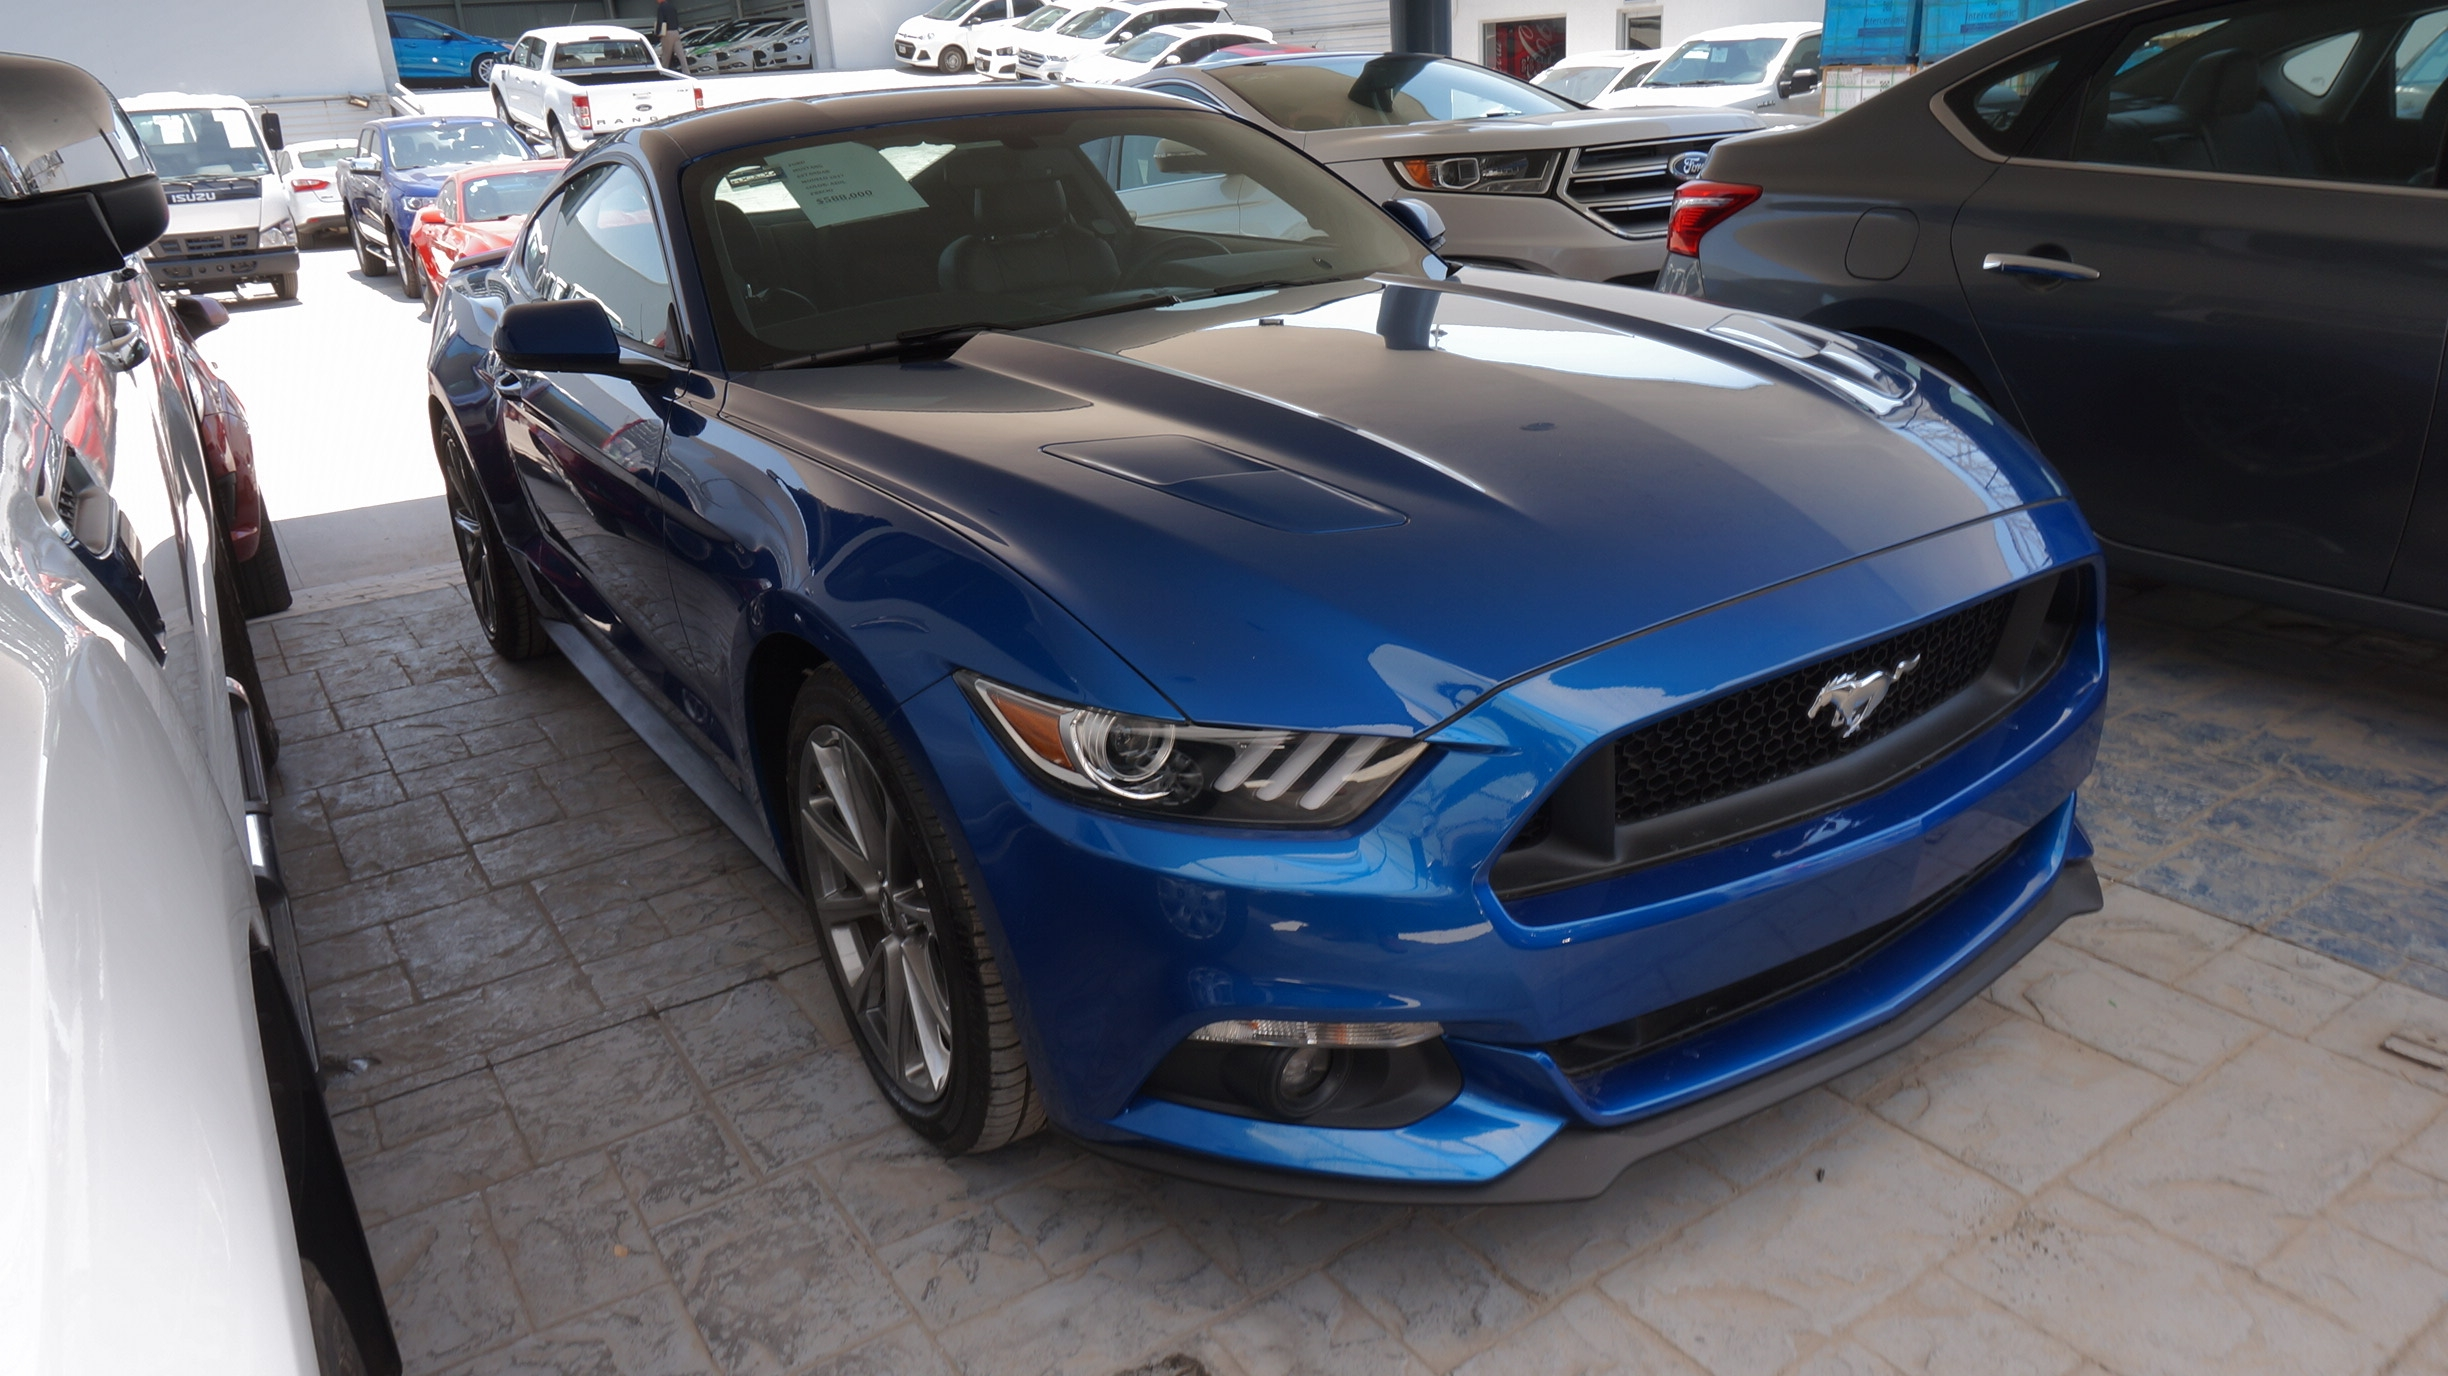 Ford Mustang Lateral derecho 1